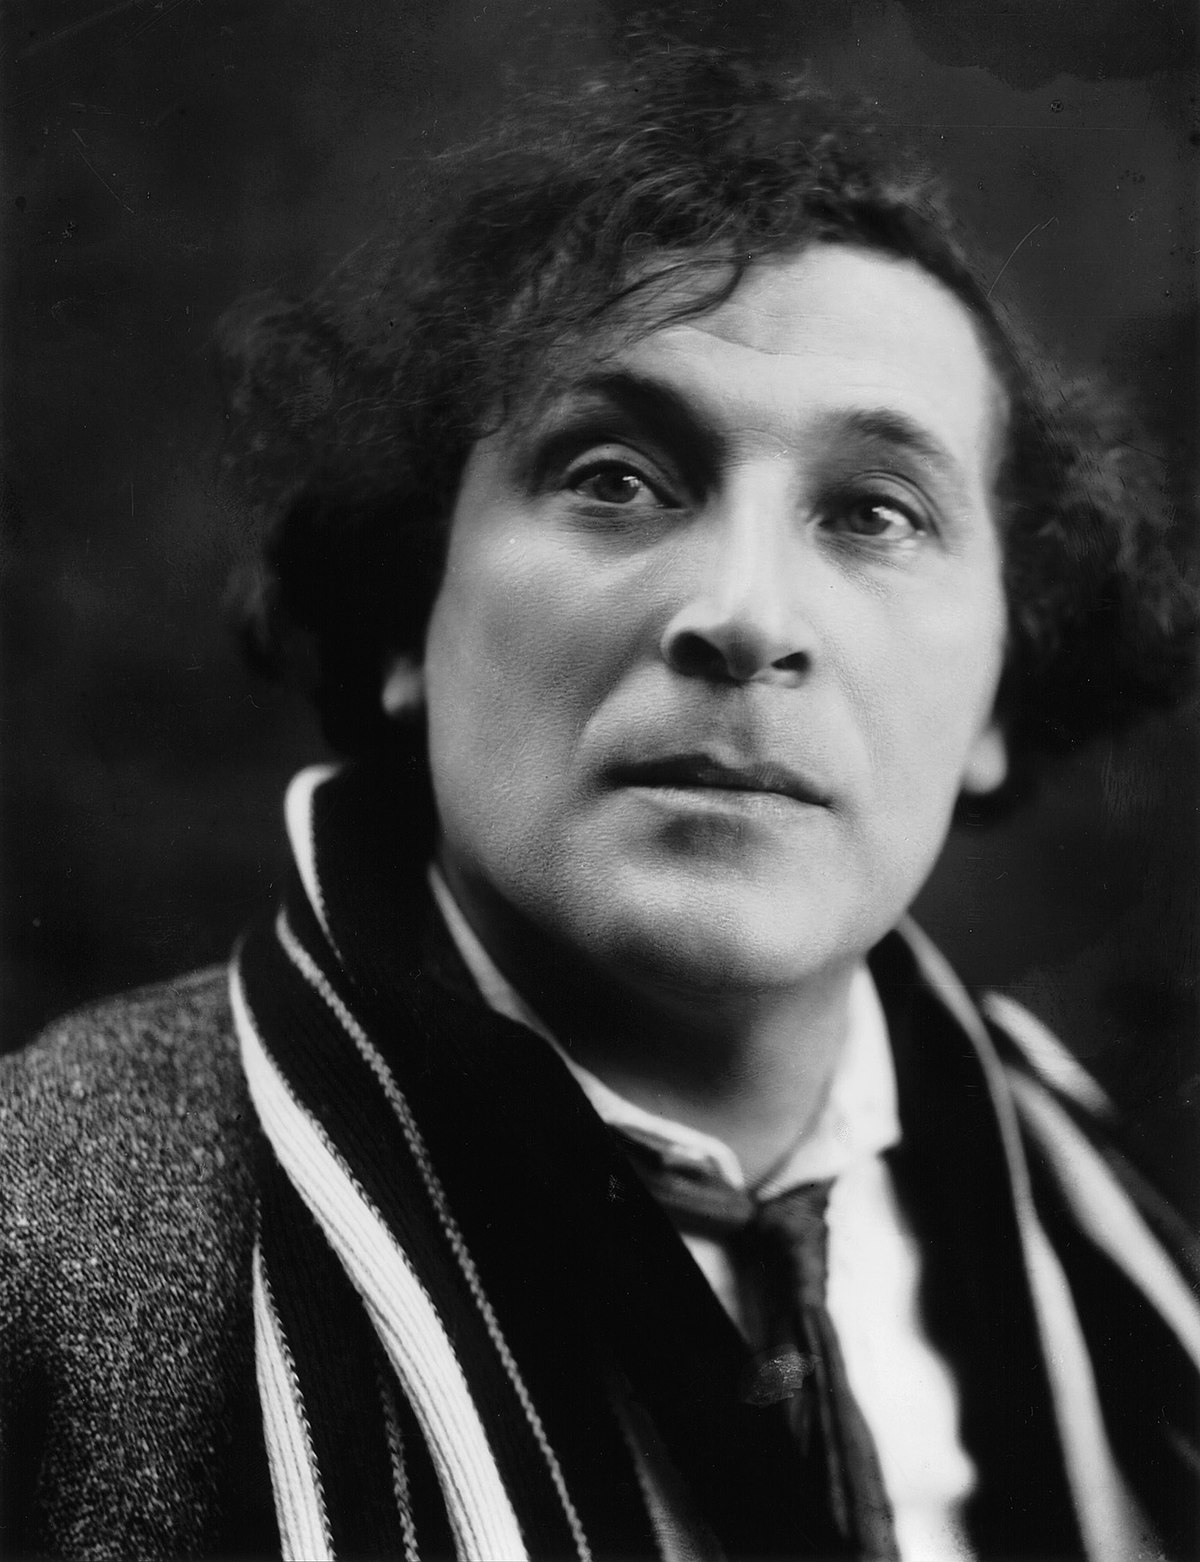 marc chagall 7 fingers : marc chagall happy birthday :  marc chagall le peintre en 2020/2021